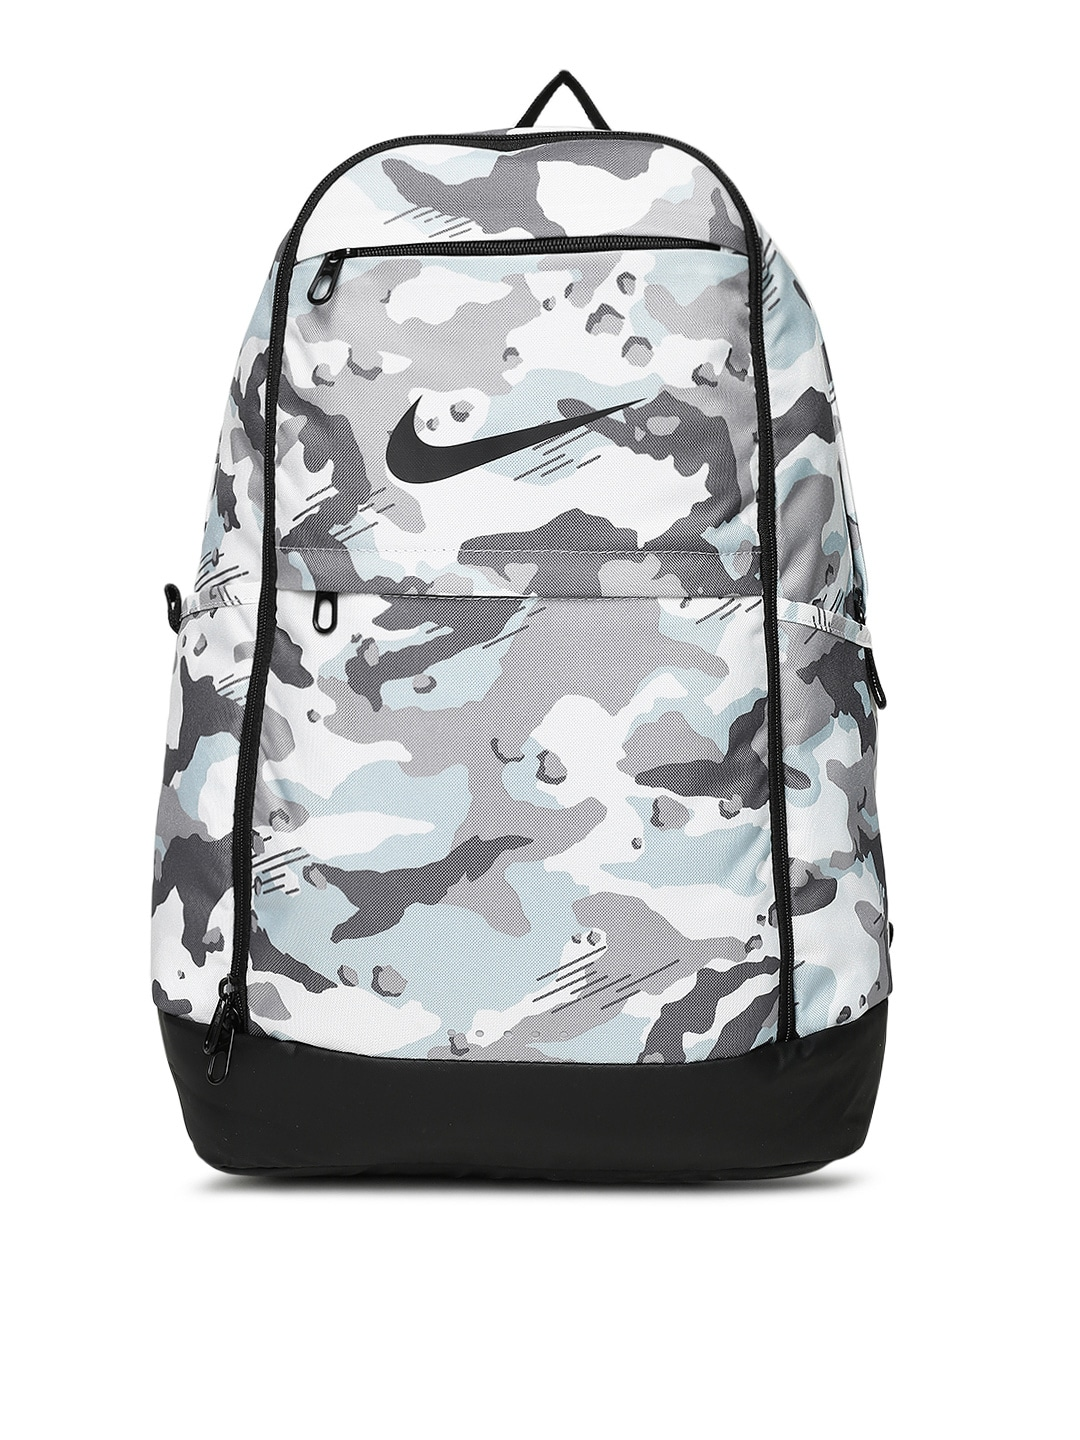 d4ac0f8b3 Women Accessories Nike - Buy Women Accessories Nike online in India